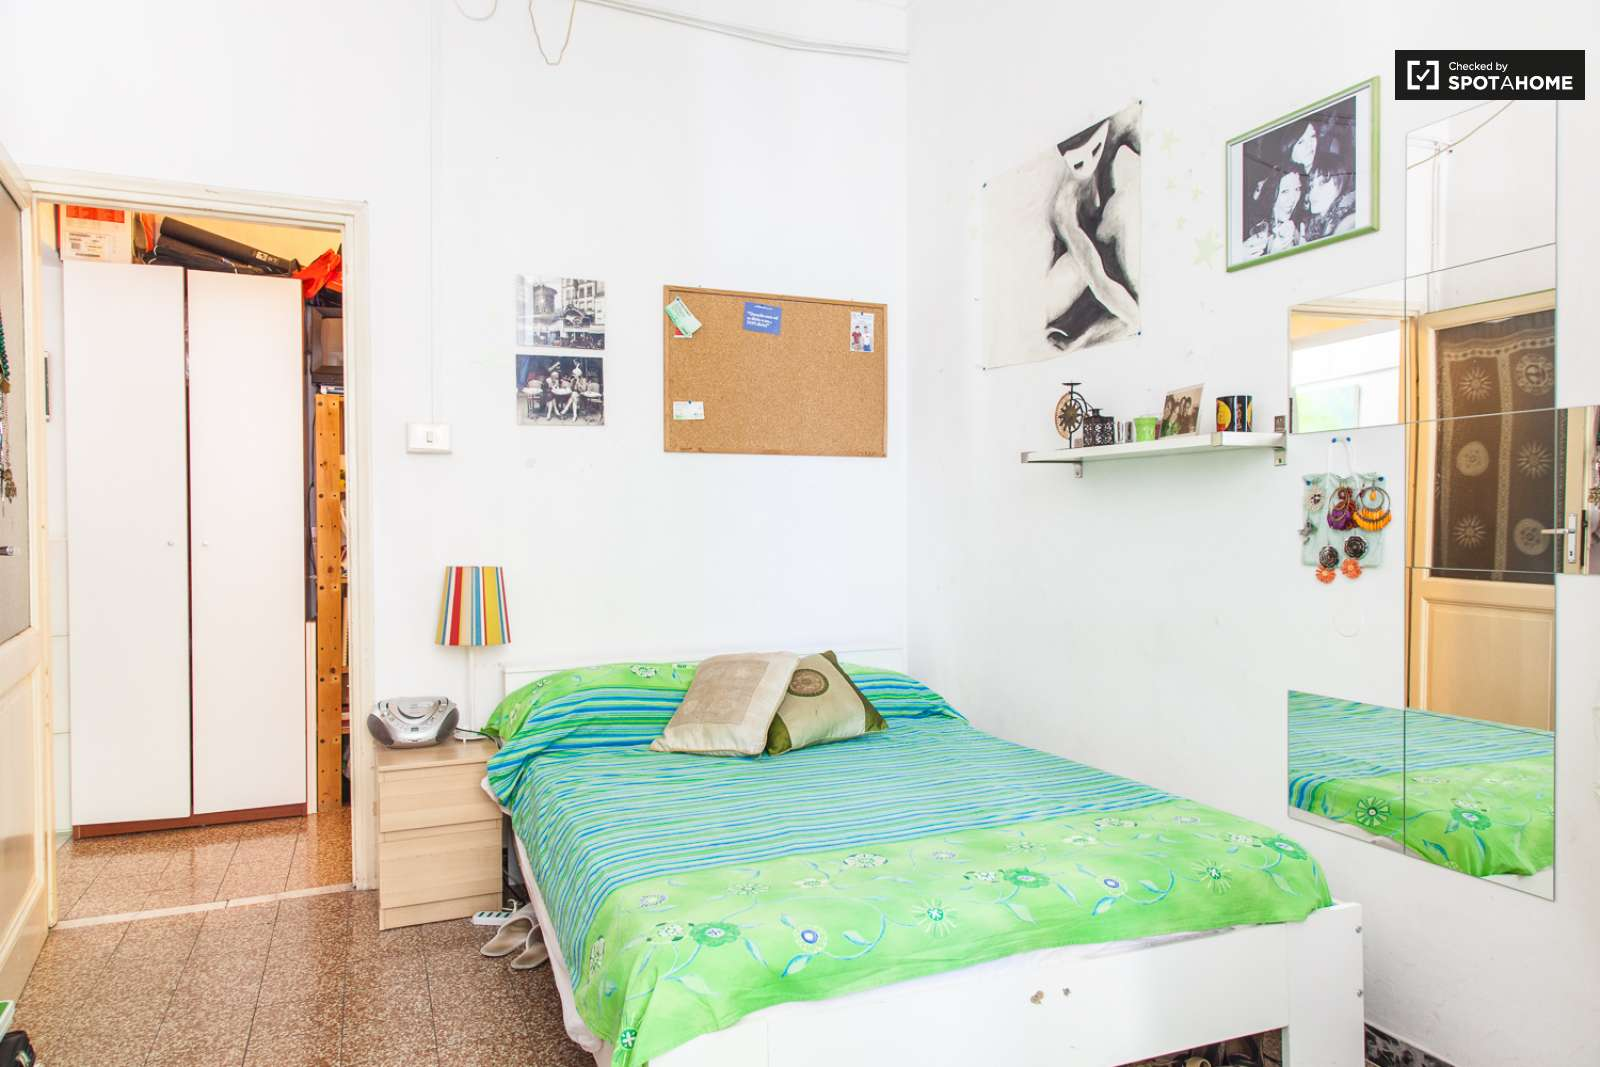 Furnished room in apartment in parioli rome ref 91975 for Furnished room